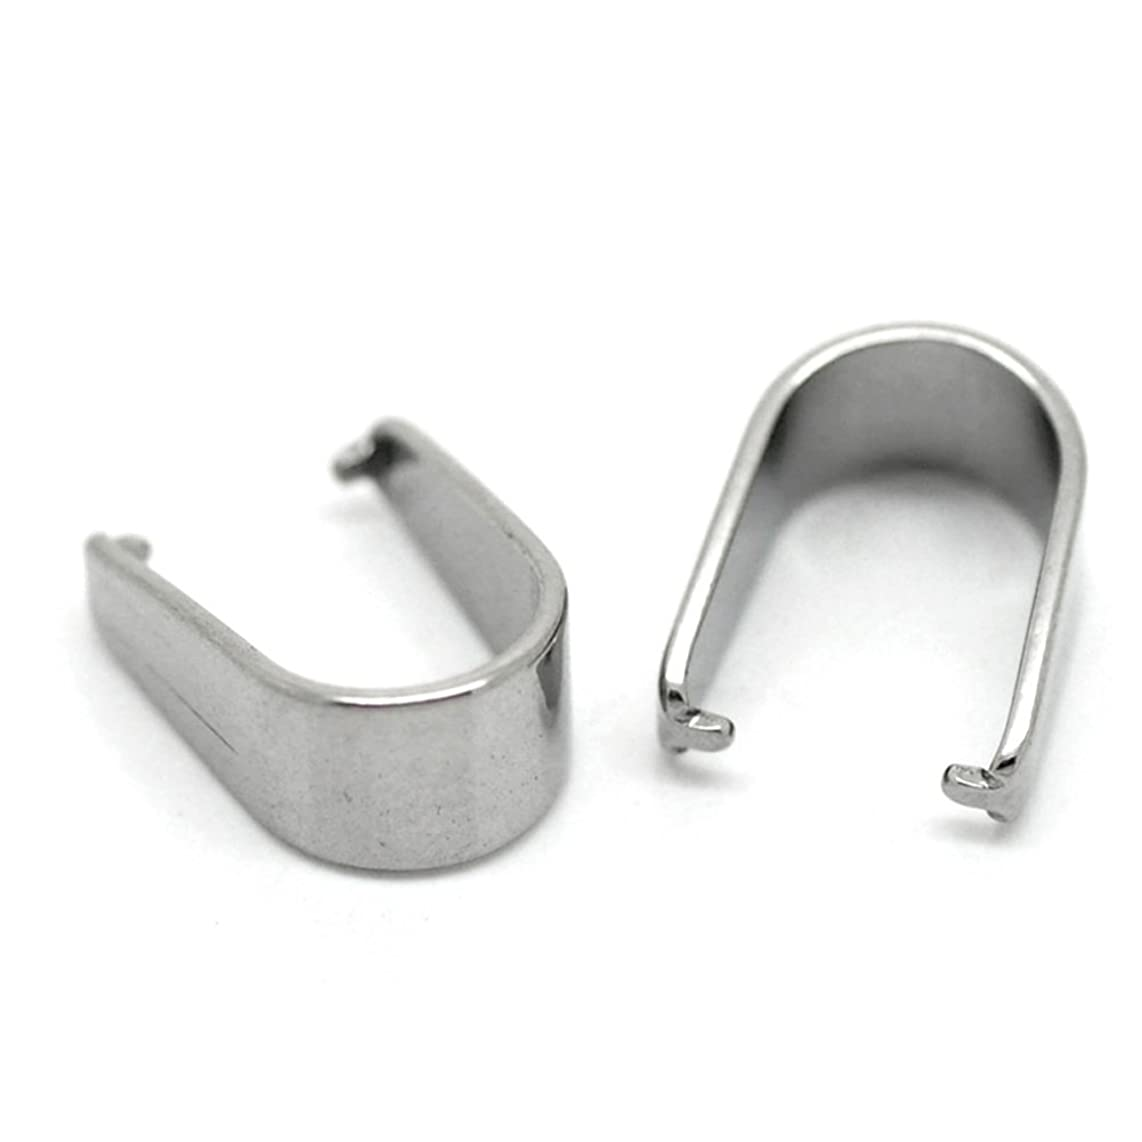 Housweety 30PCs Silver Tone Stainless Steel Pinch Clips Bail Connectors Findings 13mmx10mm